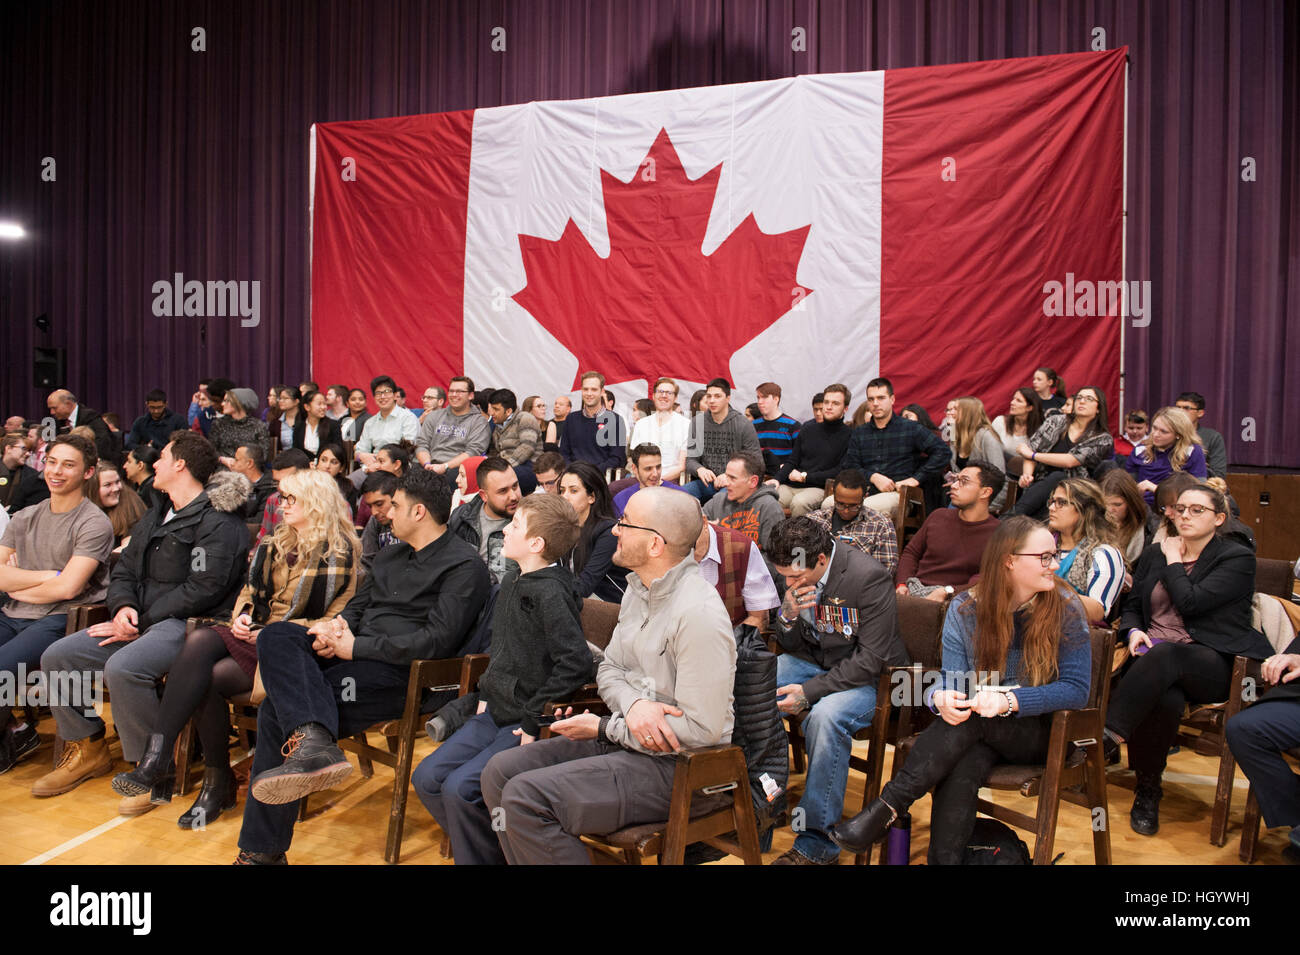 London, Ontario, Canada, 13th January, 2017. Members of the audience wait for the Prime Minister of Canada, before Stock Photo